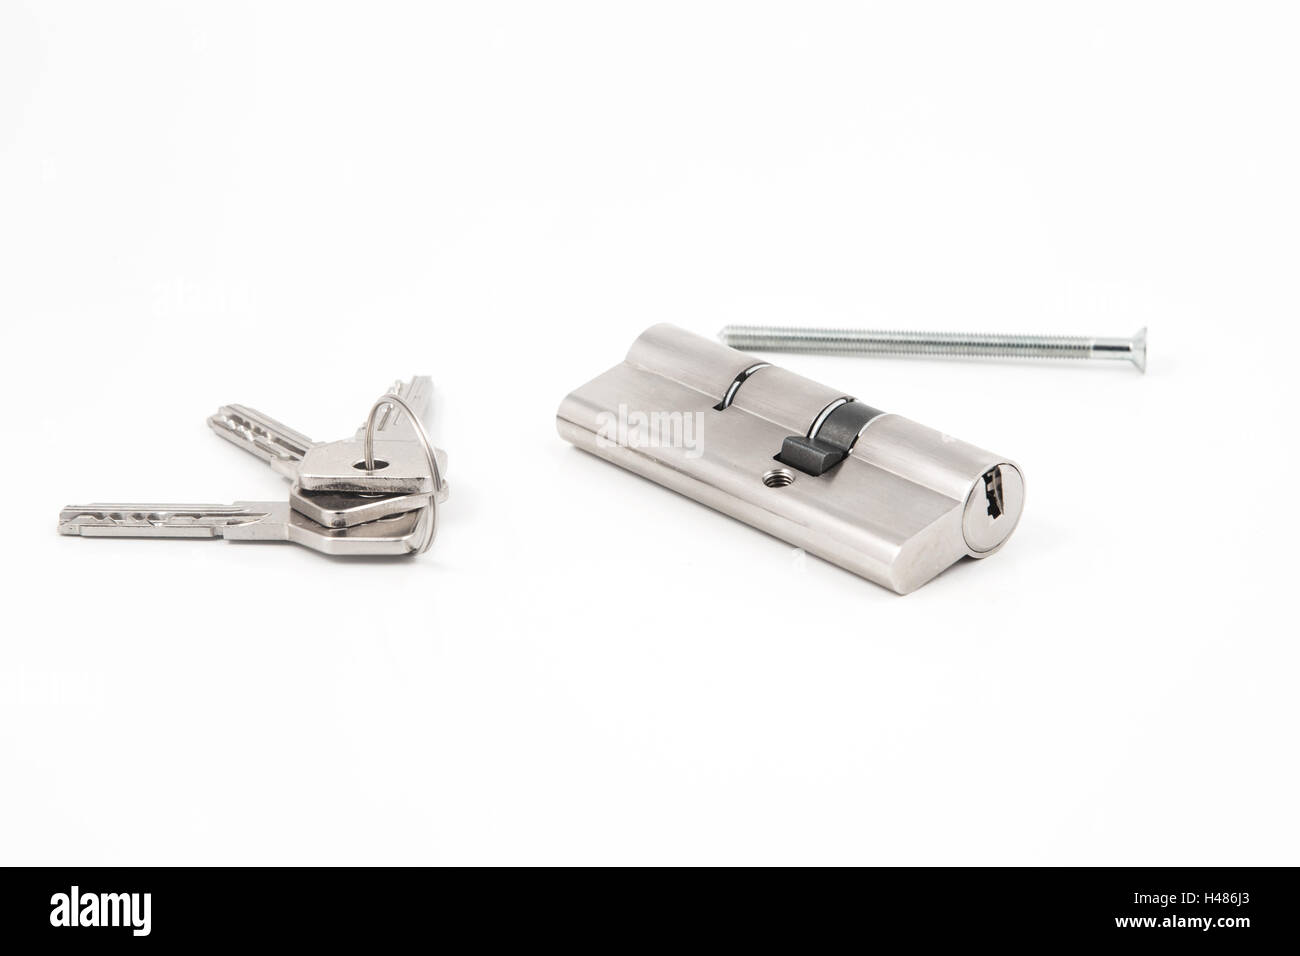 an security lock with cylinder and key door handle - Stock Image